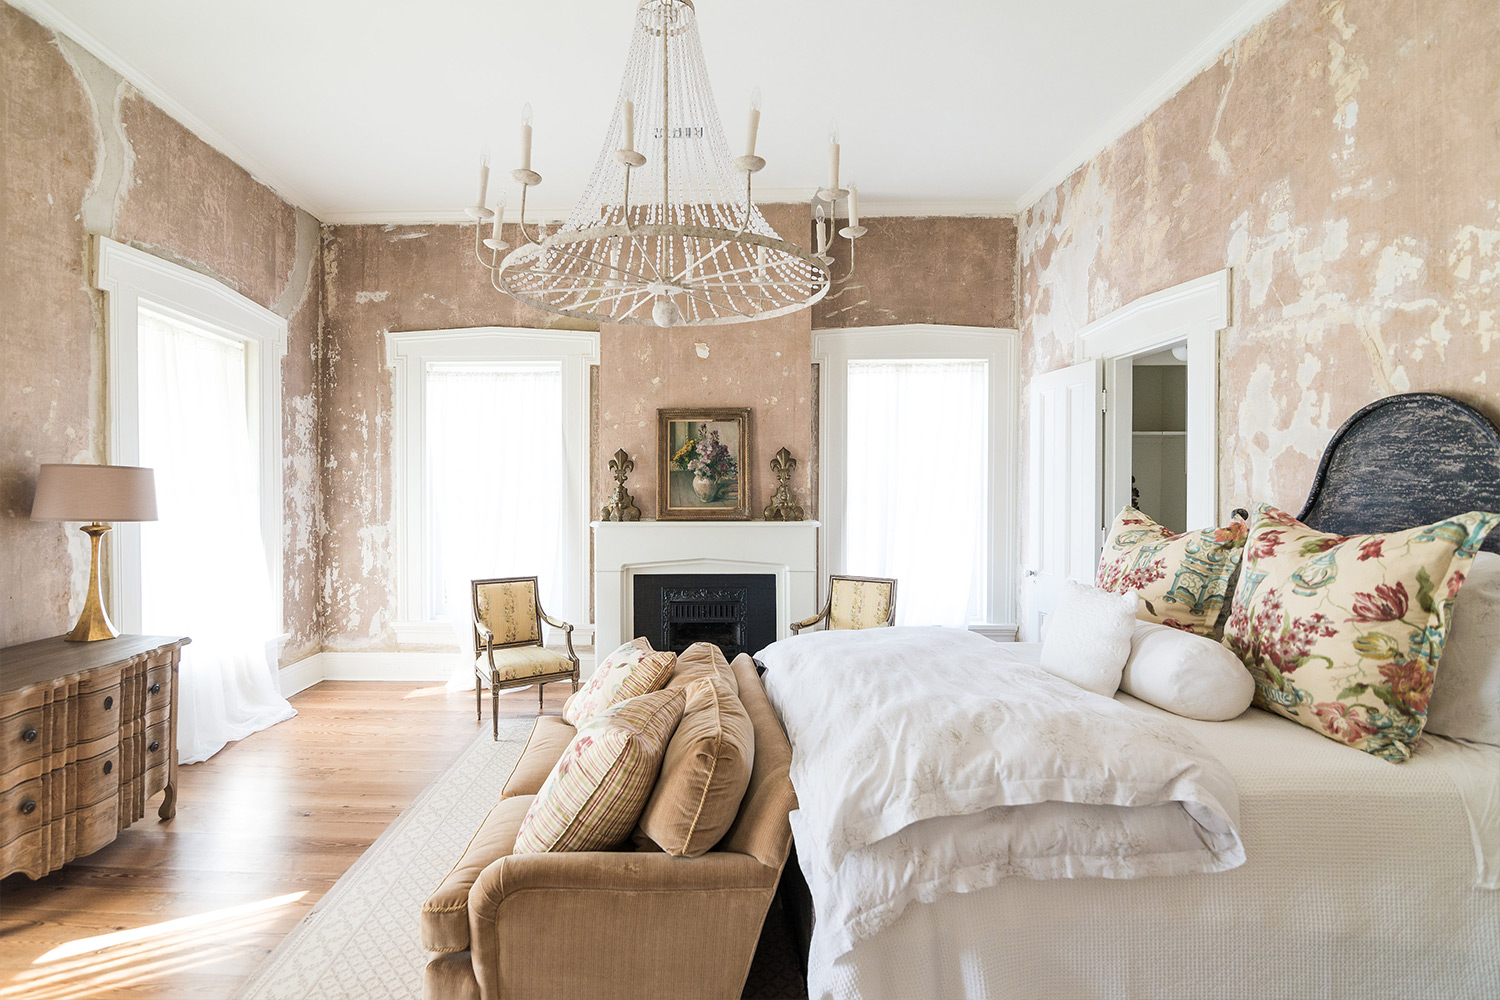 THE ILLGES HOUSE – A Beautiful, Historic Event Space